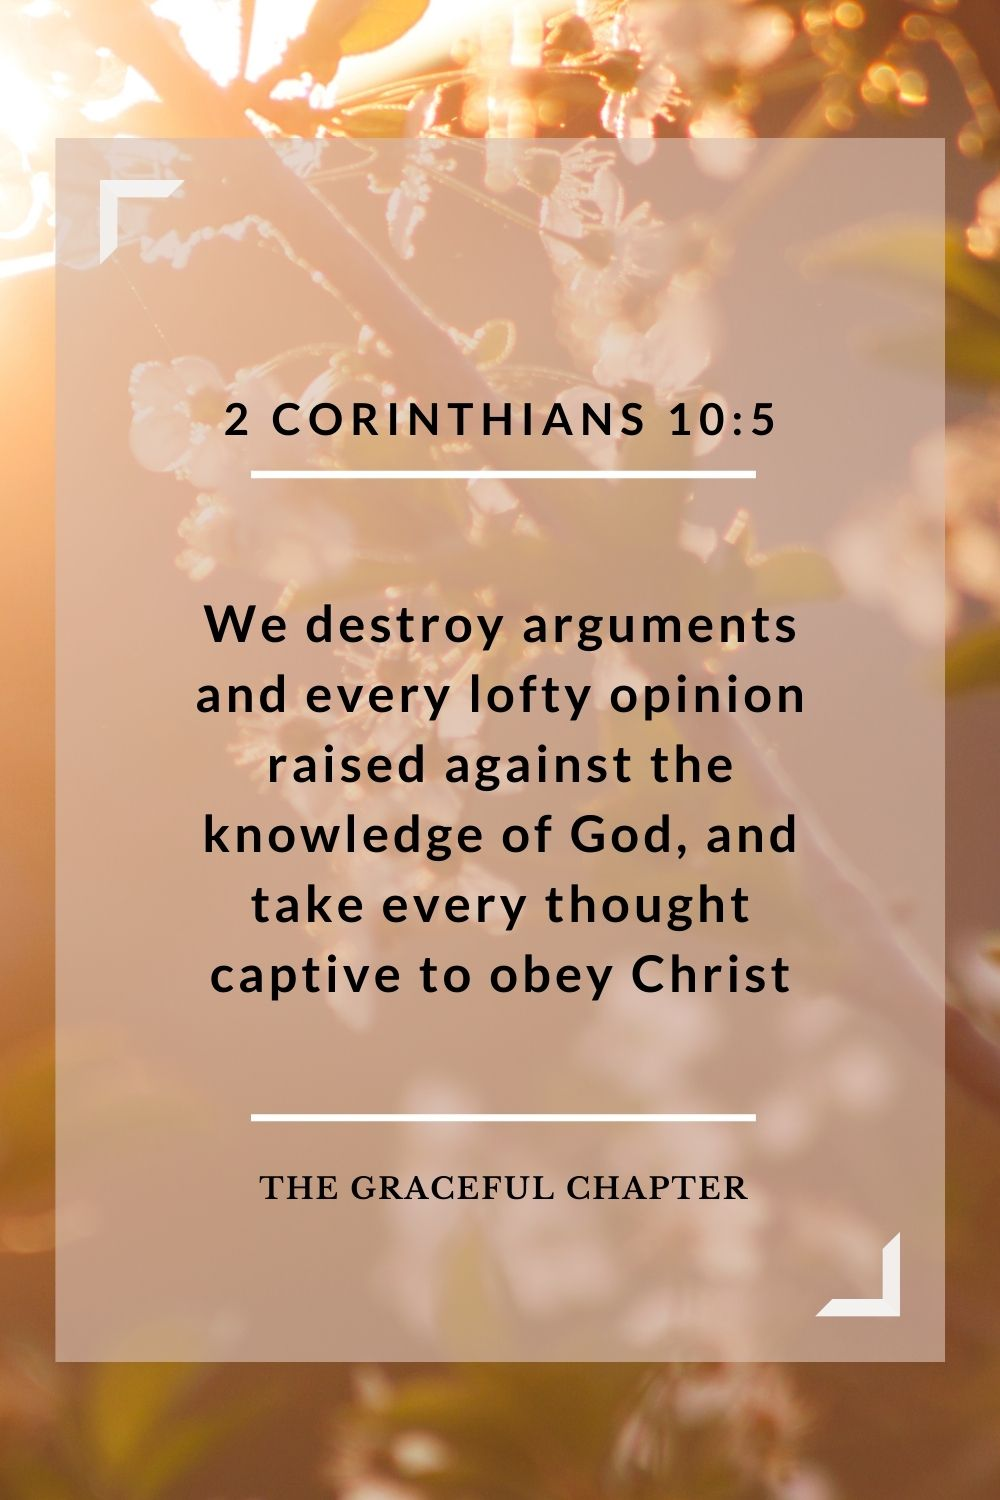 We destroy arguments and every lofty opinion raised against the knowledge of God, and take every thought captive to obey Christ 2 Corinthians 10:5